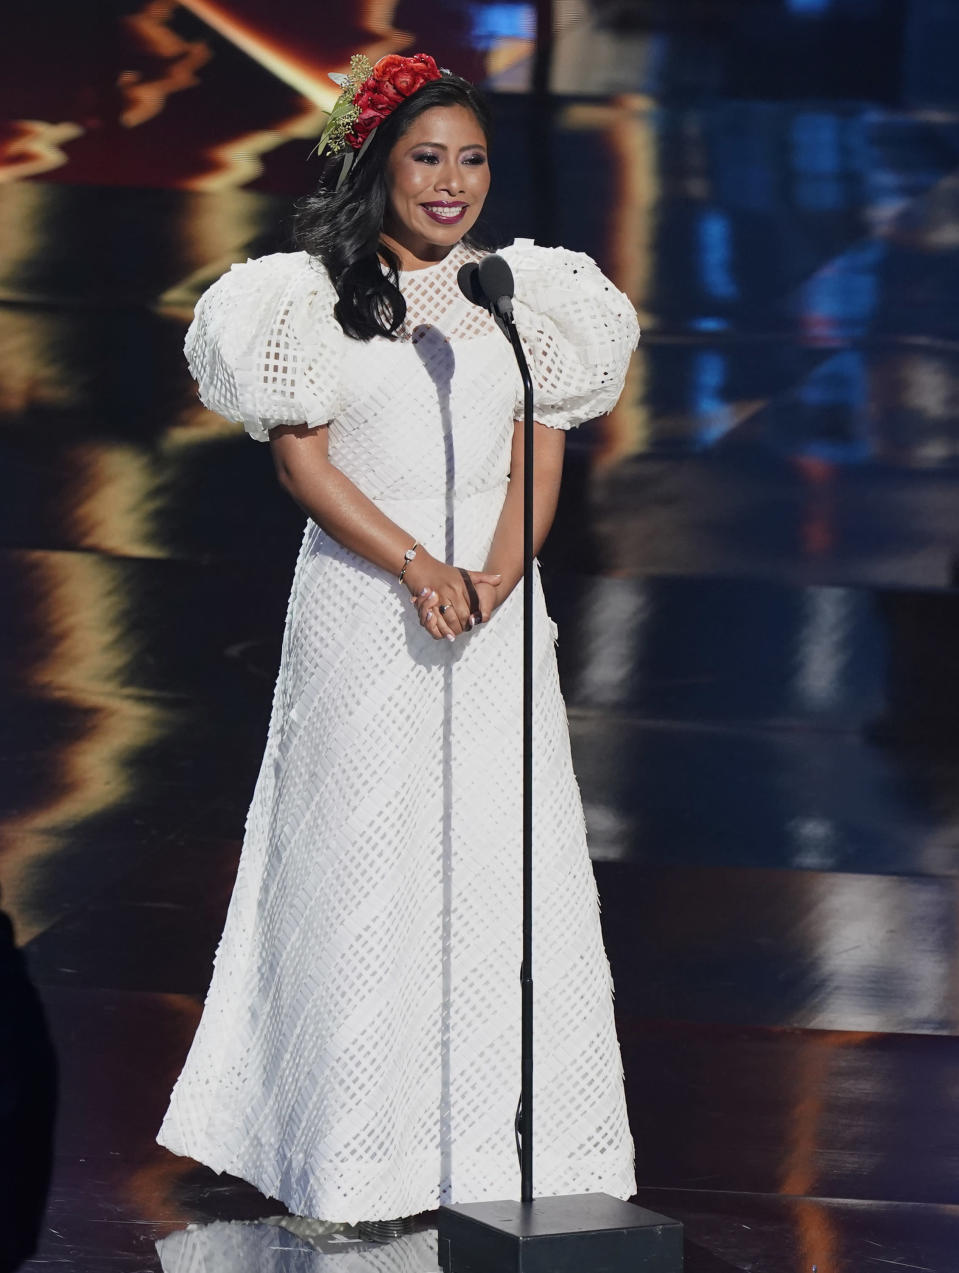 Host Yalitza Aparicio speaks at the 21st Latin Grammy Awards, airing on Thursday, Nov. 19, 2020, at American Airlines Arena in Miami. (AP Photo/Marta Lavandier)